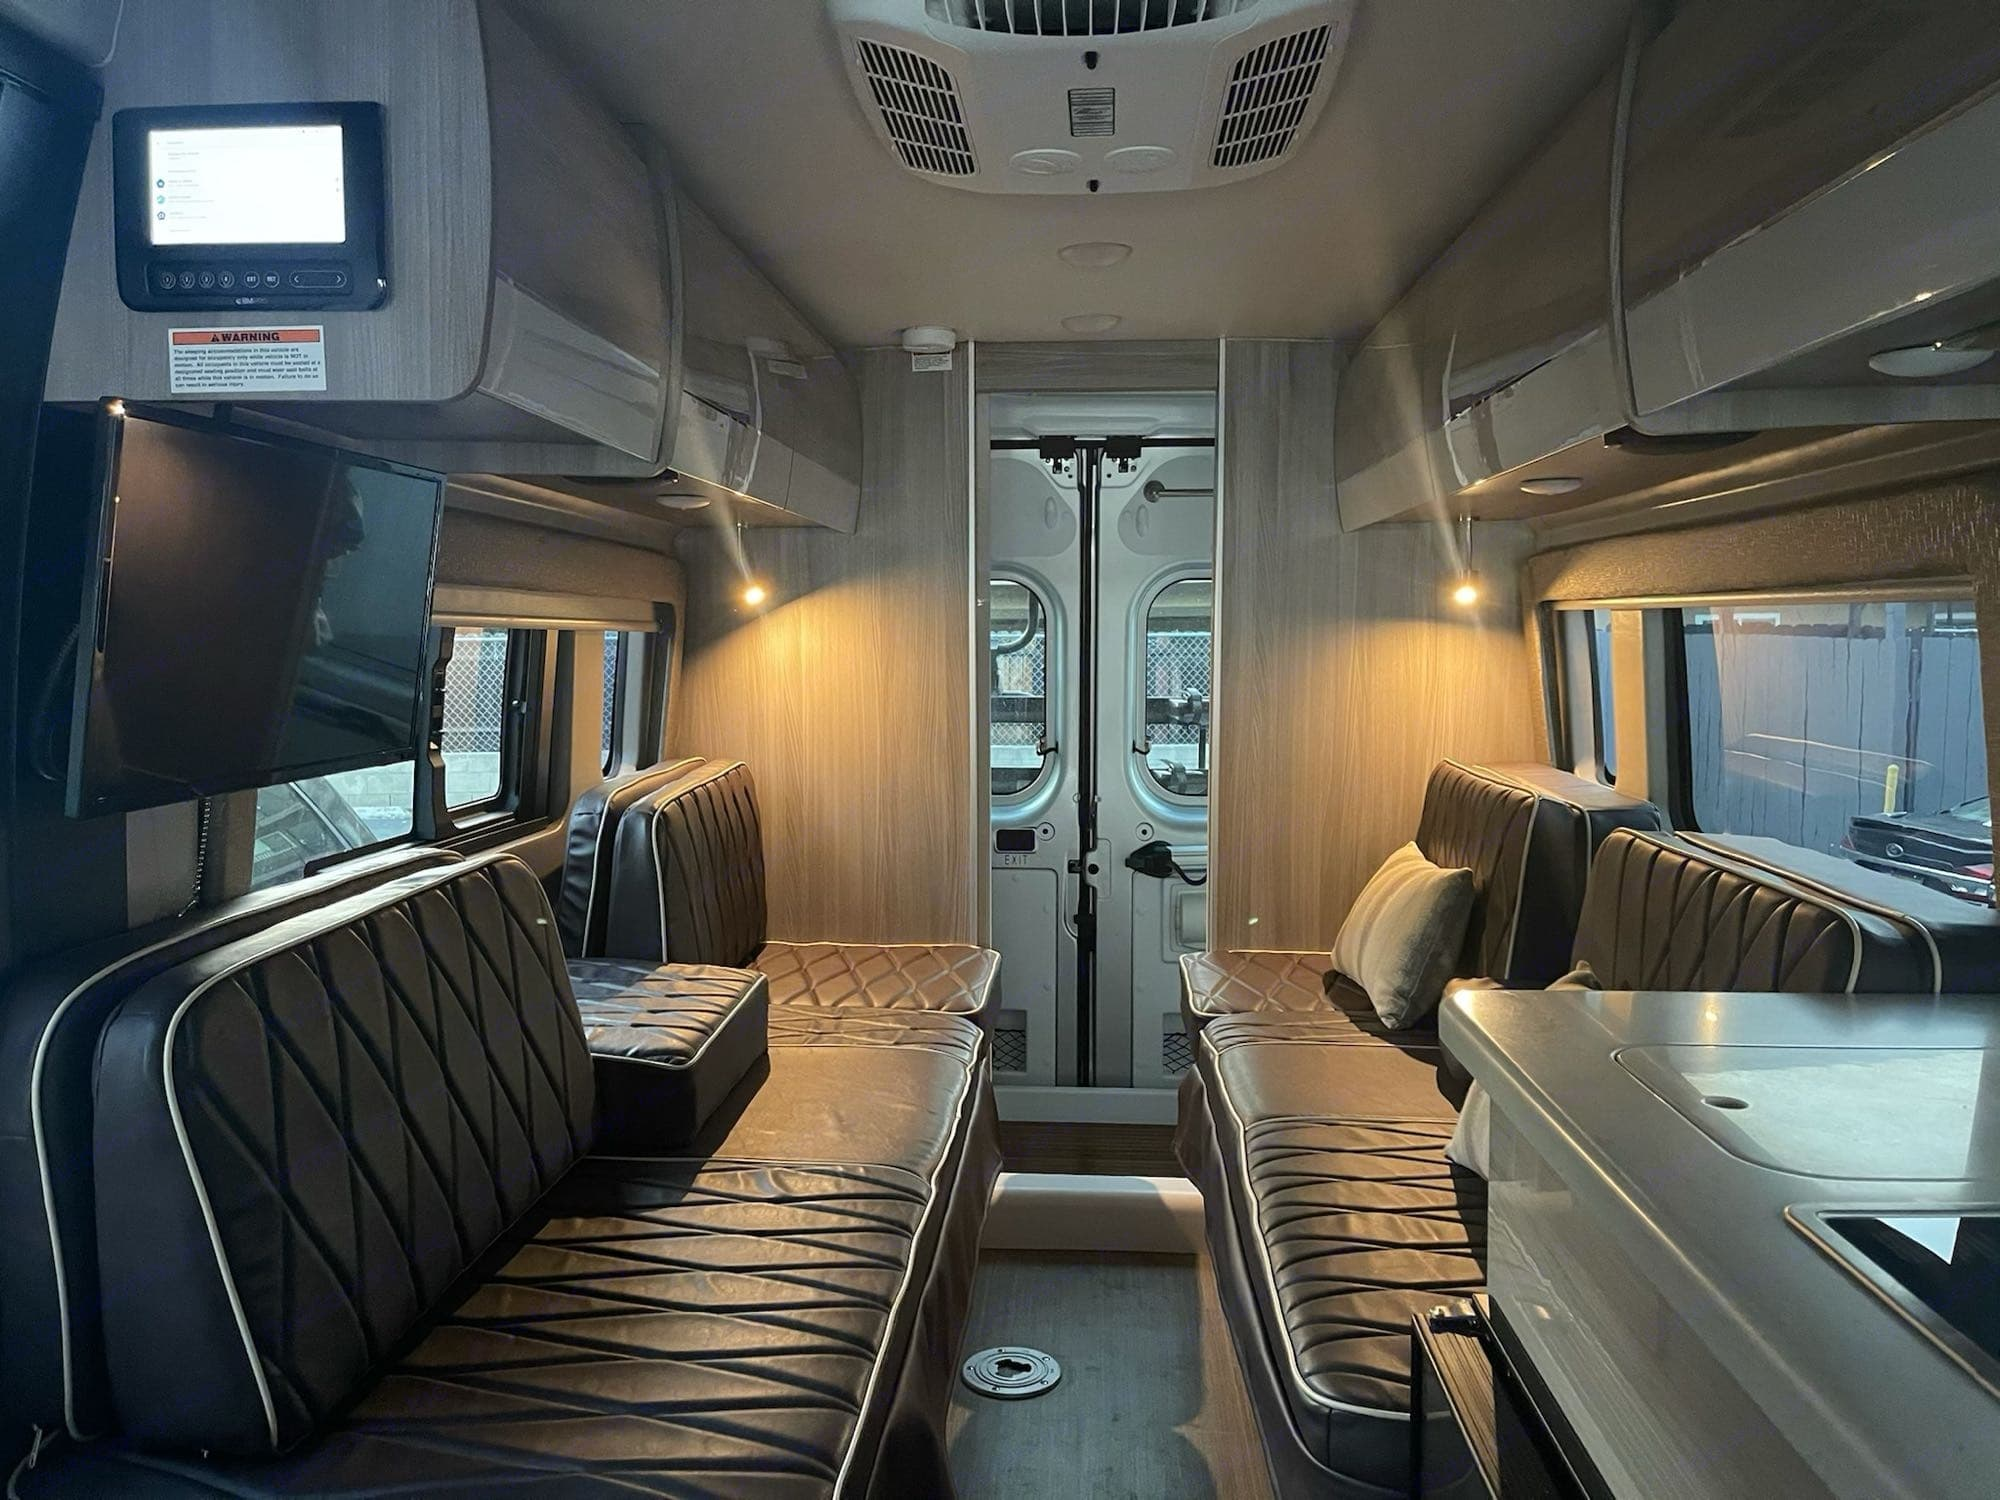 New stain resistant upholstery. Thor Motor Coach 2021 Sequence L 2021